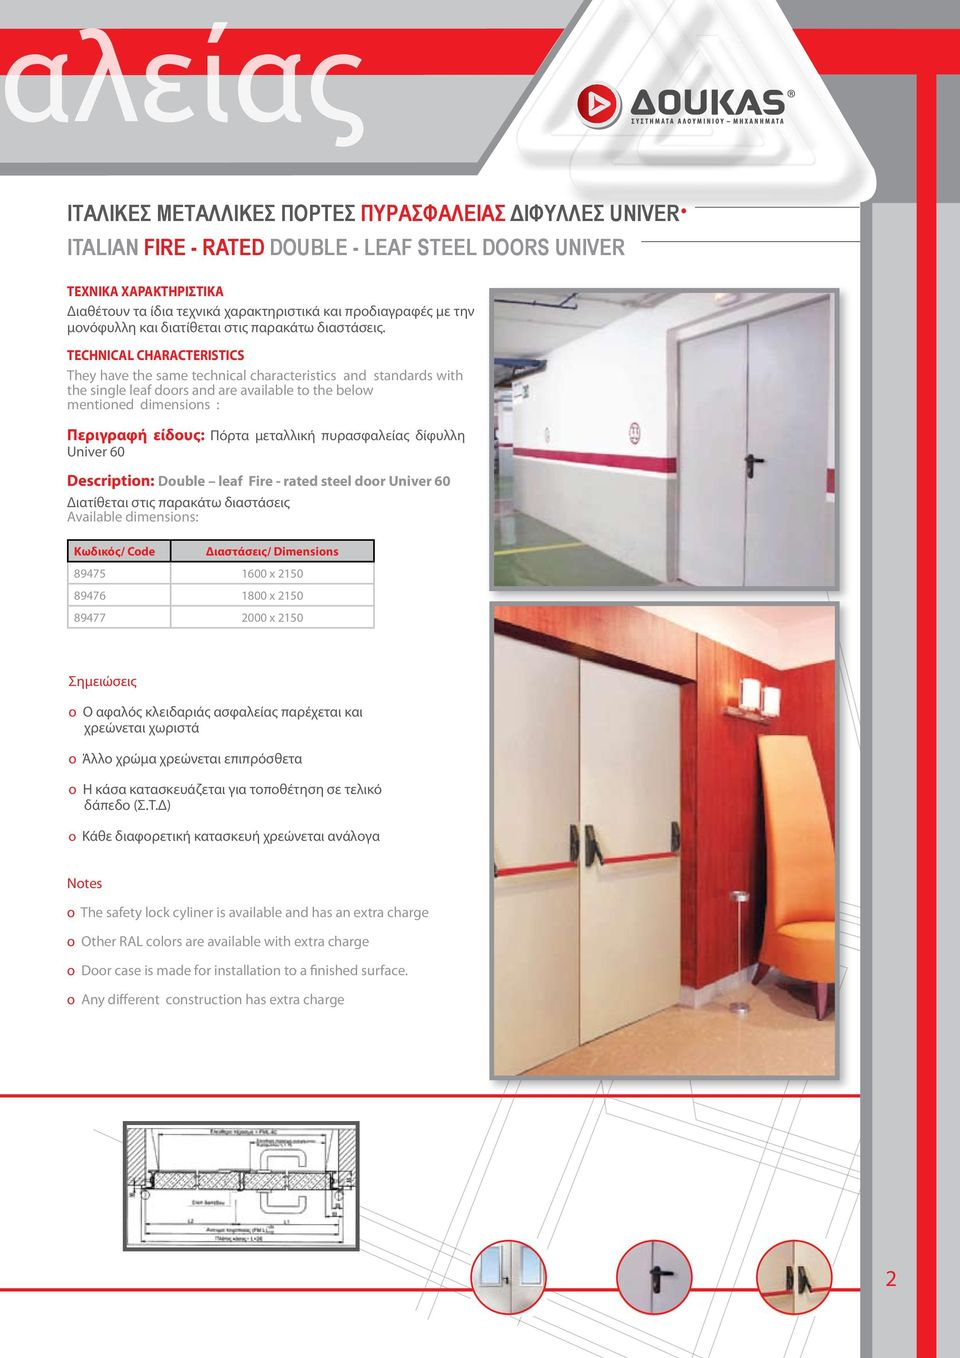 TECHNICAL CHARACTERISTICS They have the same technical characteristics and standards with the single leaf doors and are available to the below mentioned dimensions : Περιγραφή είδους: Πόρτα μεταλλική